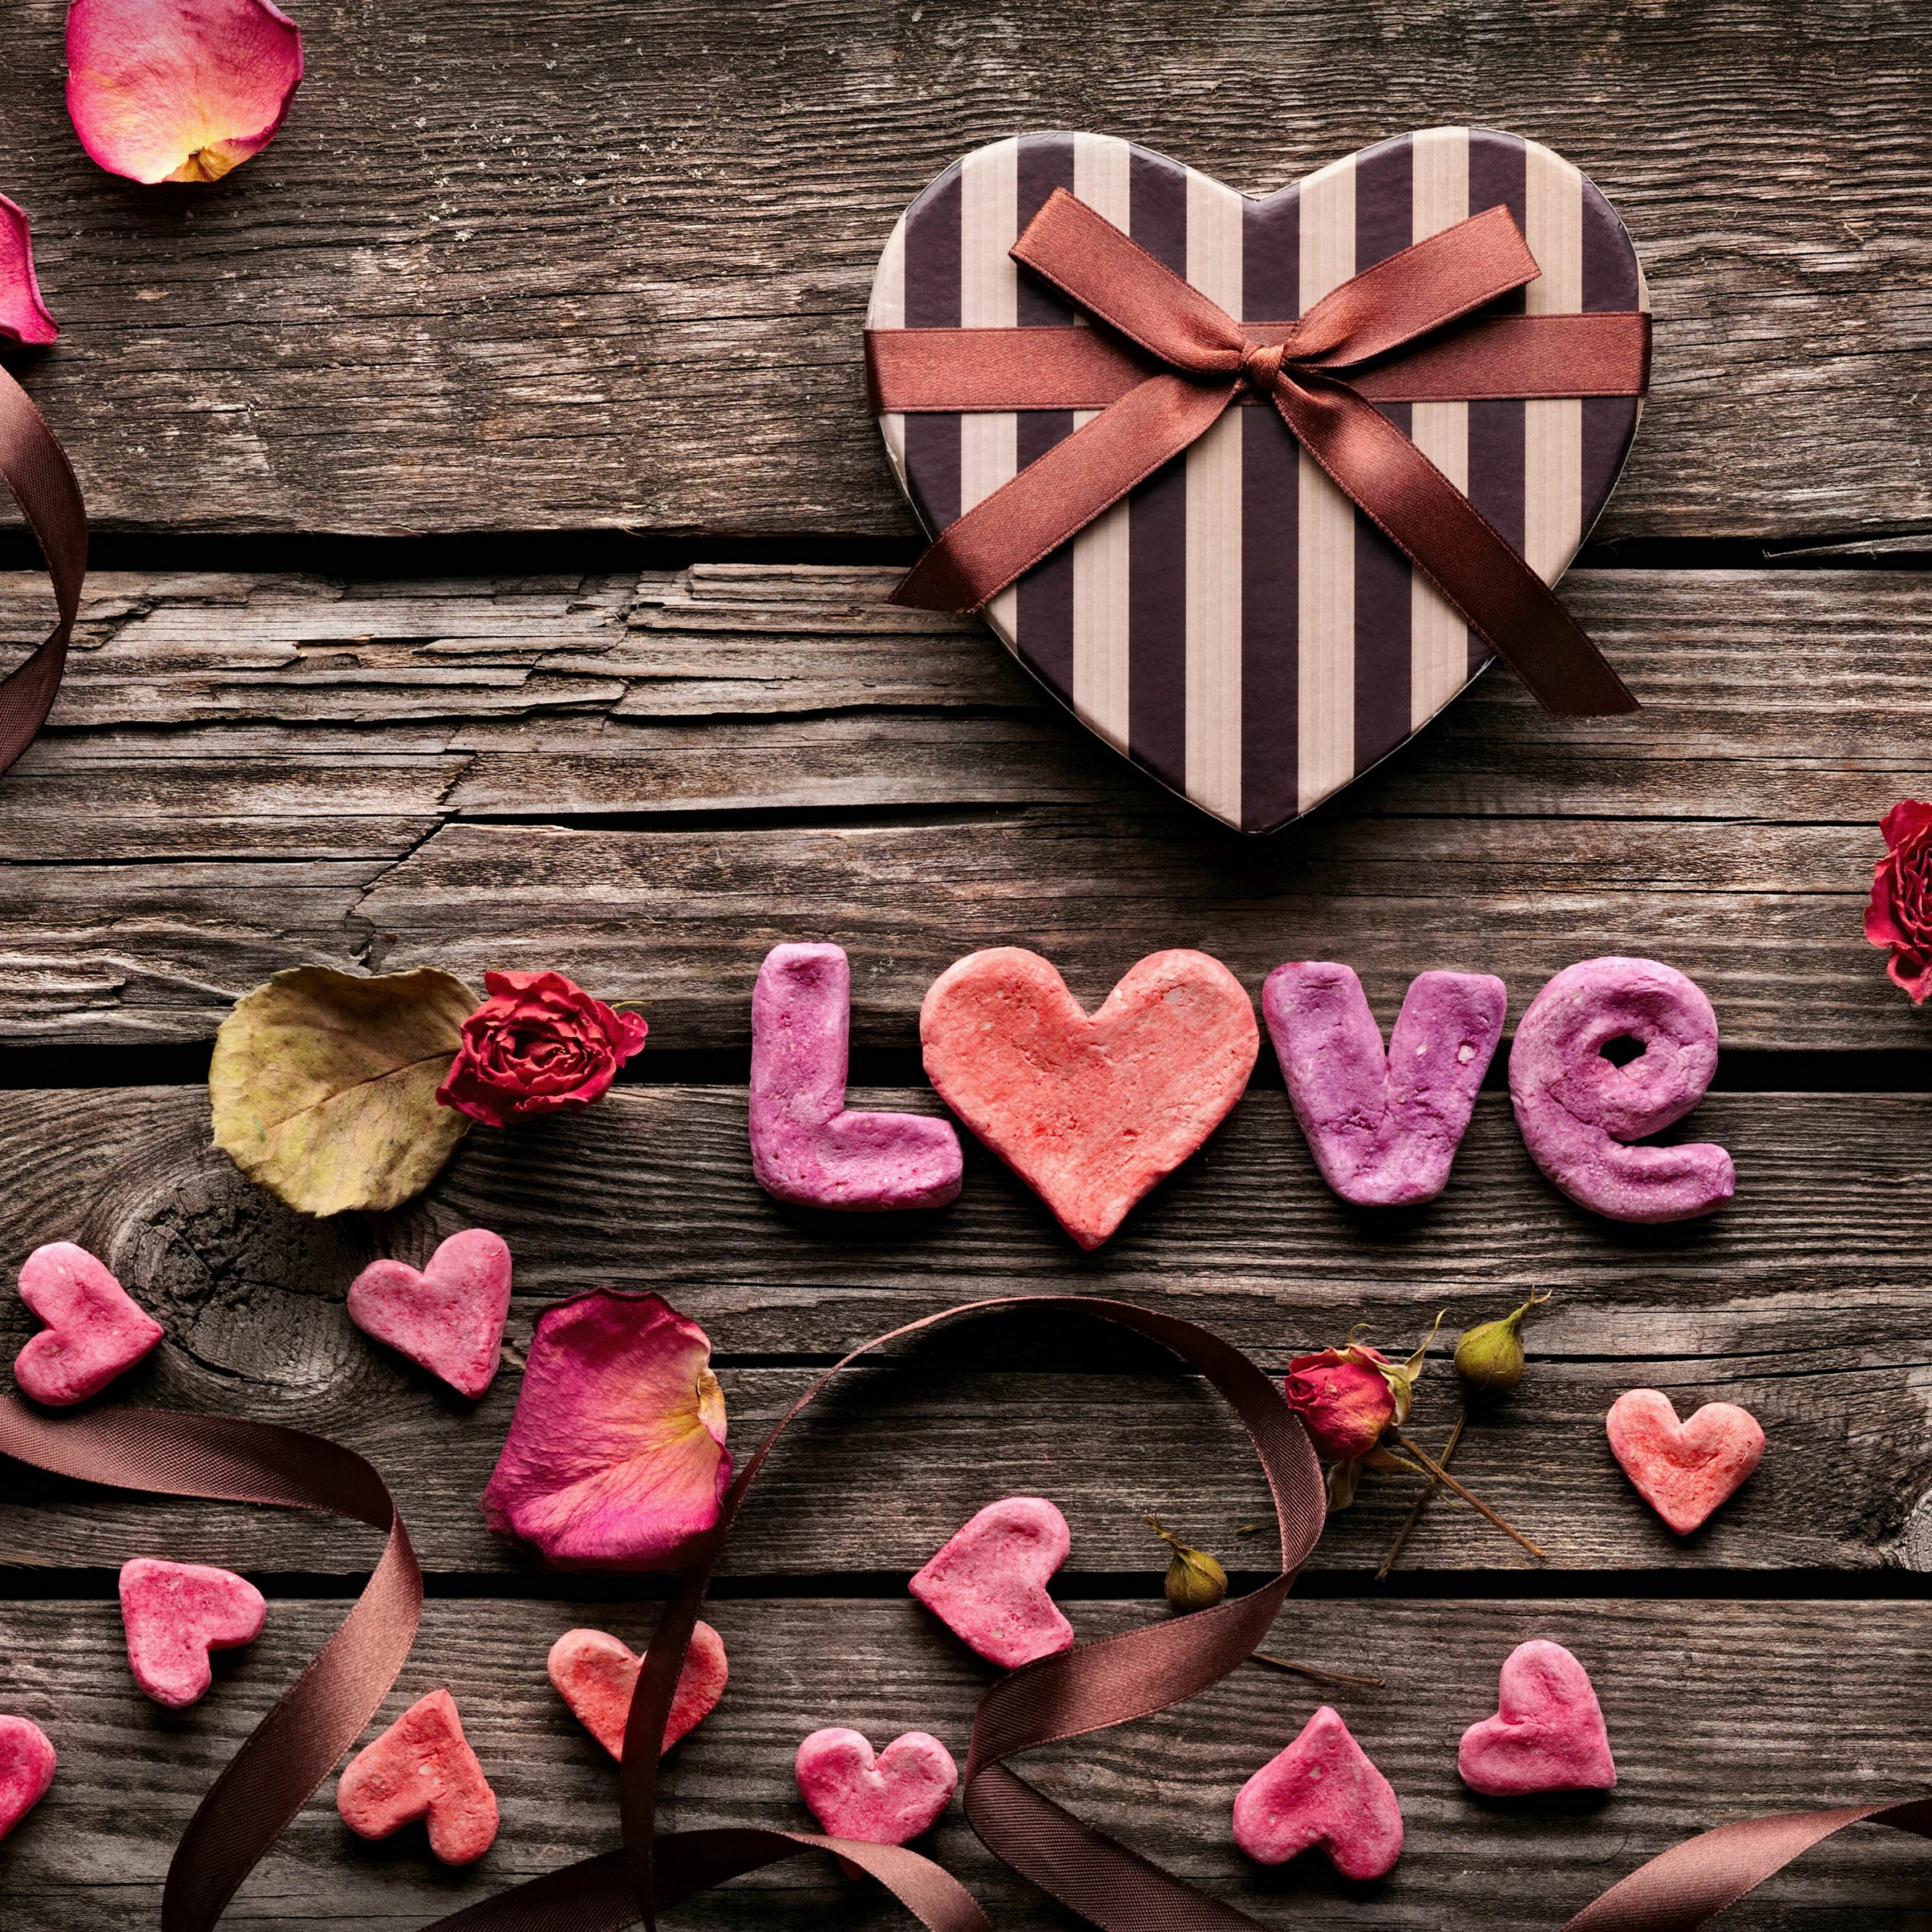 Romantic Gift Wallpaper for Apple iPad 4